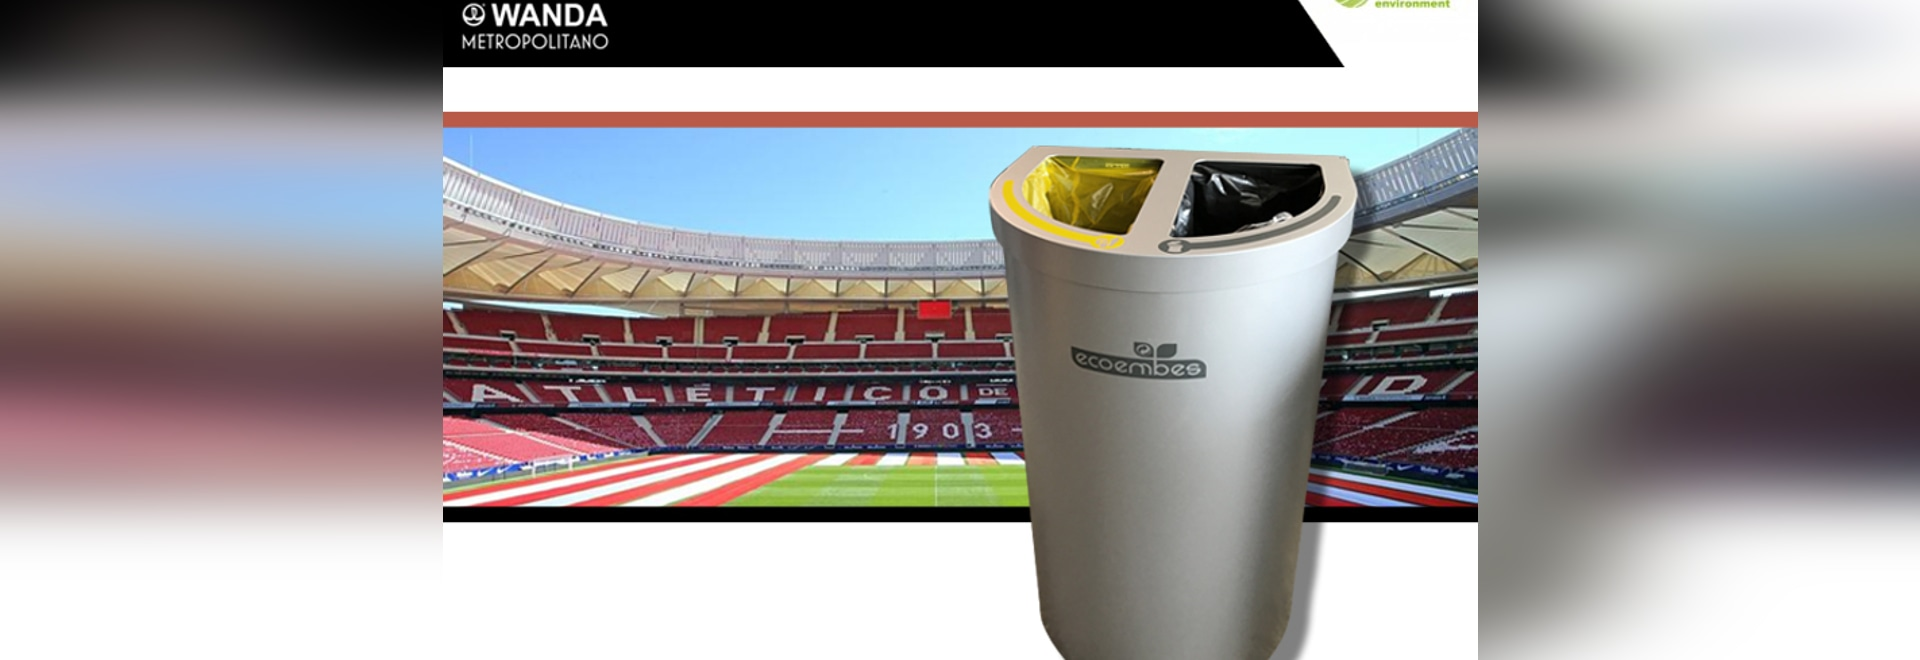 Atletico de Madrid signs the recycling bin Nice Multiwaste of Cervic Environment